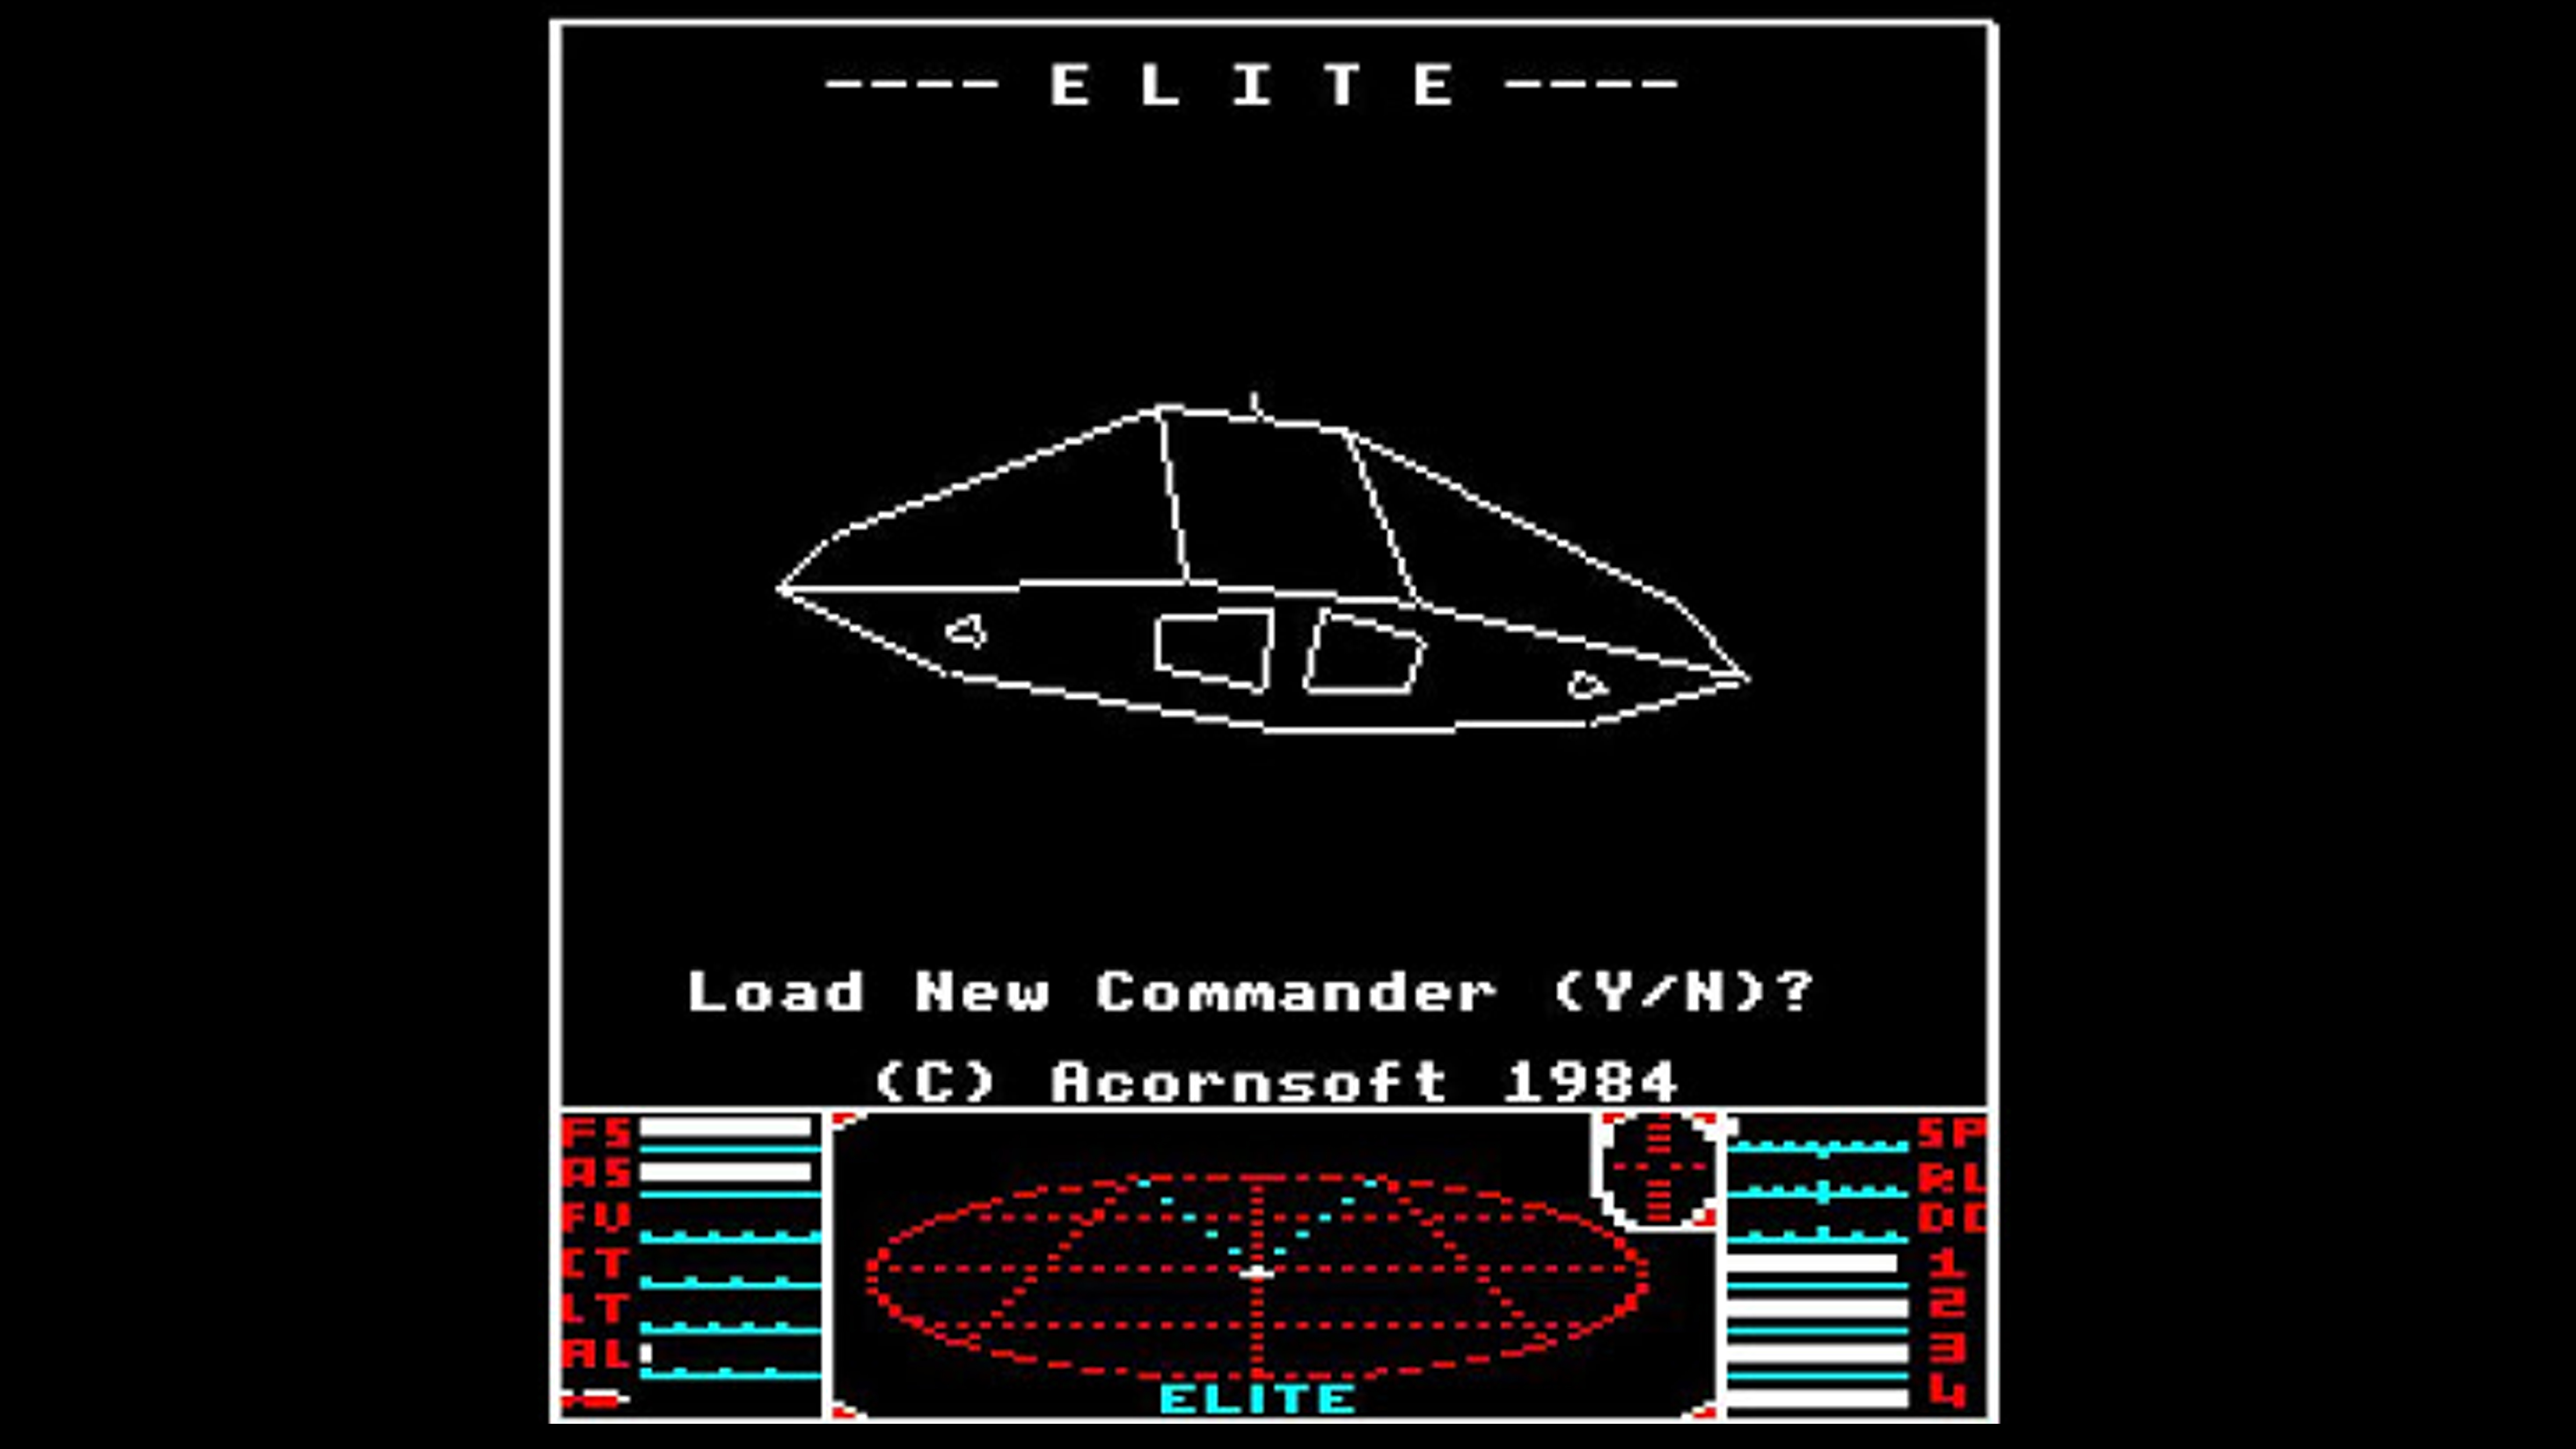 Elite game title screen showing a navigation map at the bottom, a simple line space ship in the middle and saying